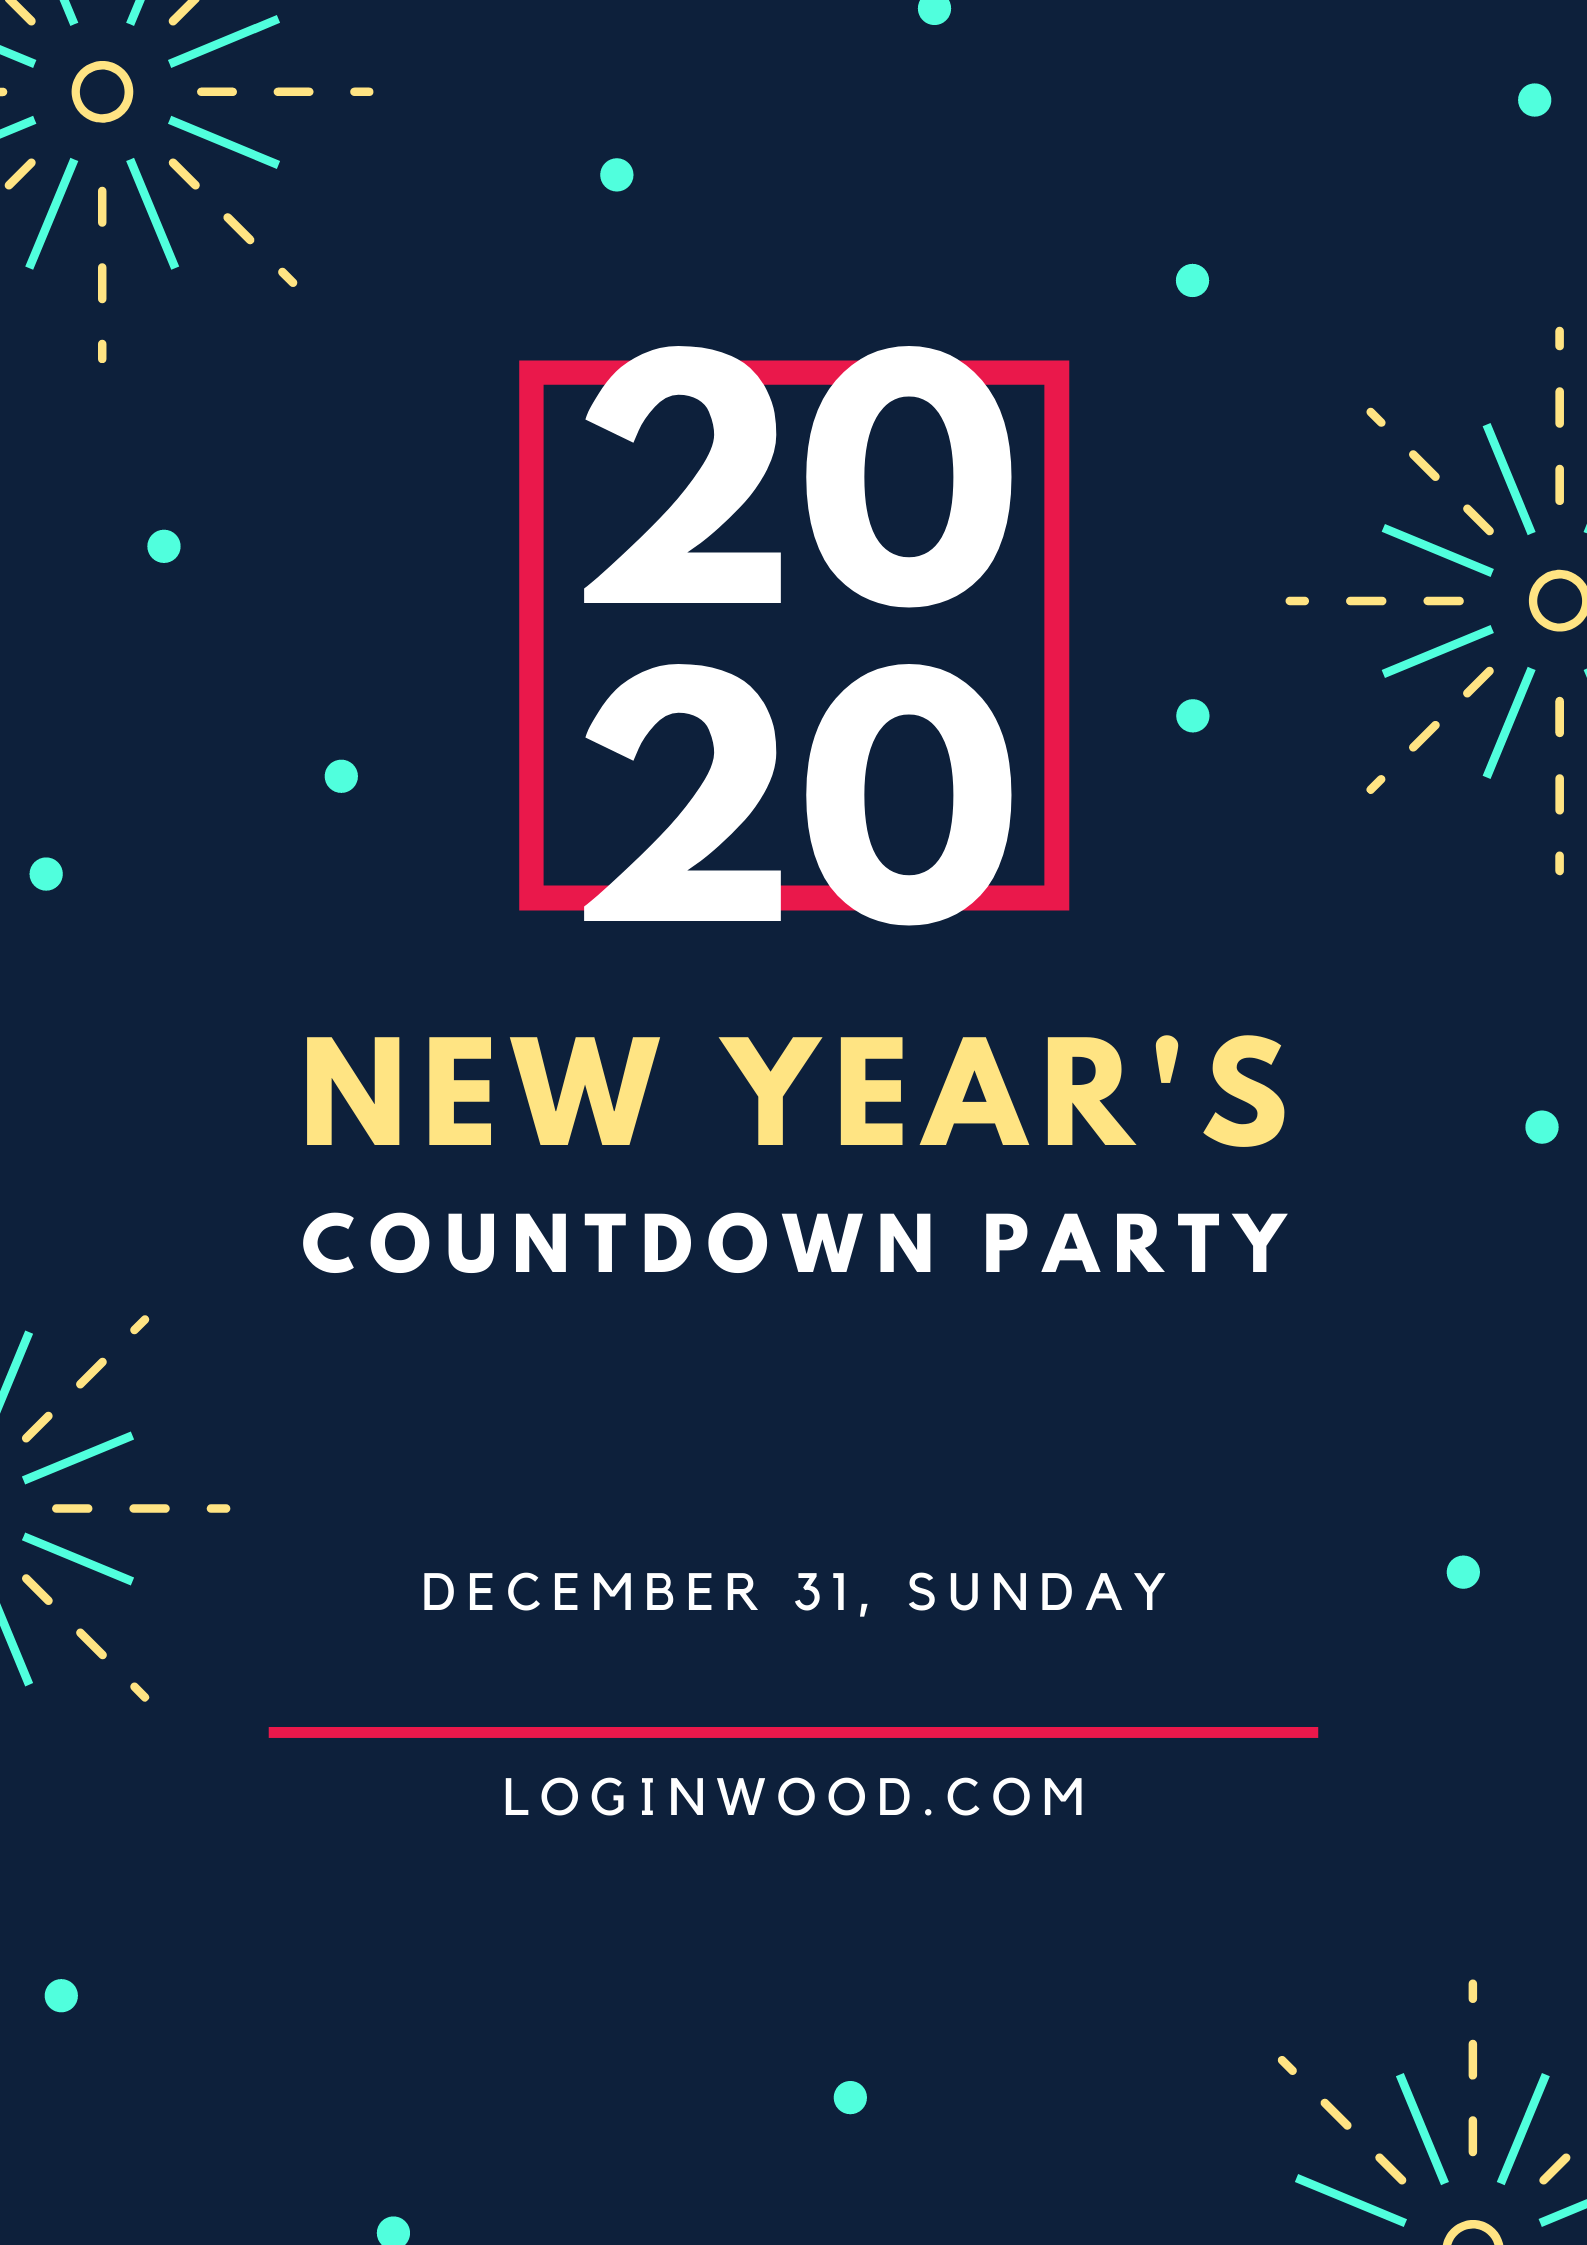 Pin by LOGINWOOD on New Year 2020 in 2020 New years